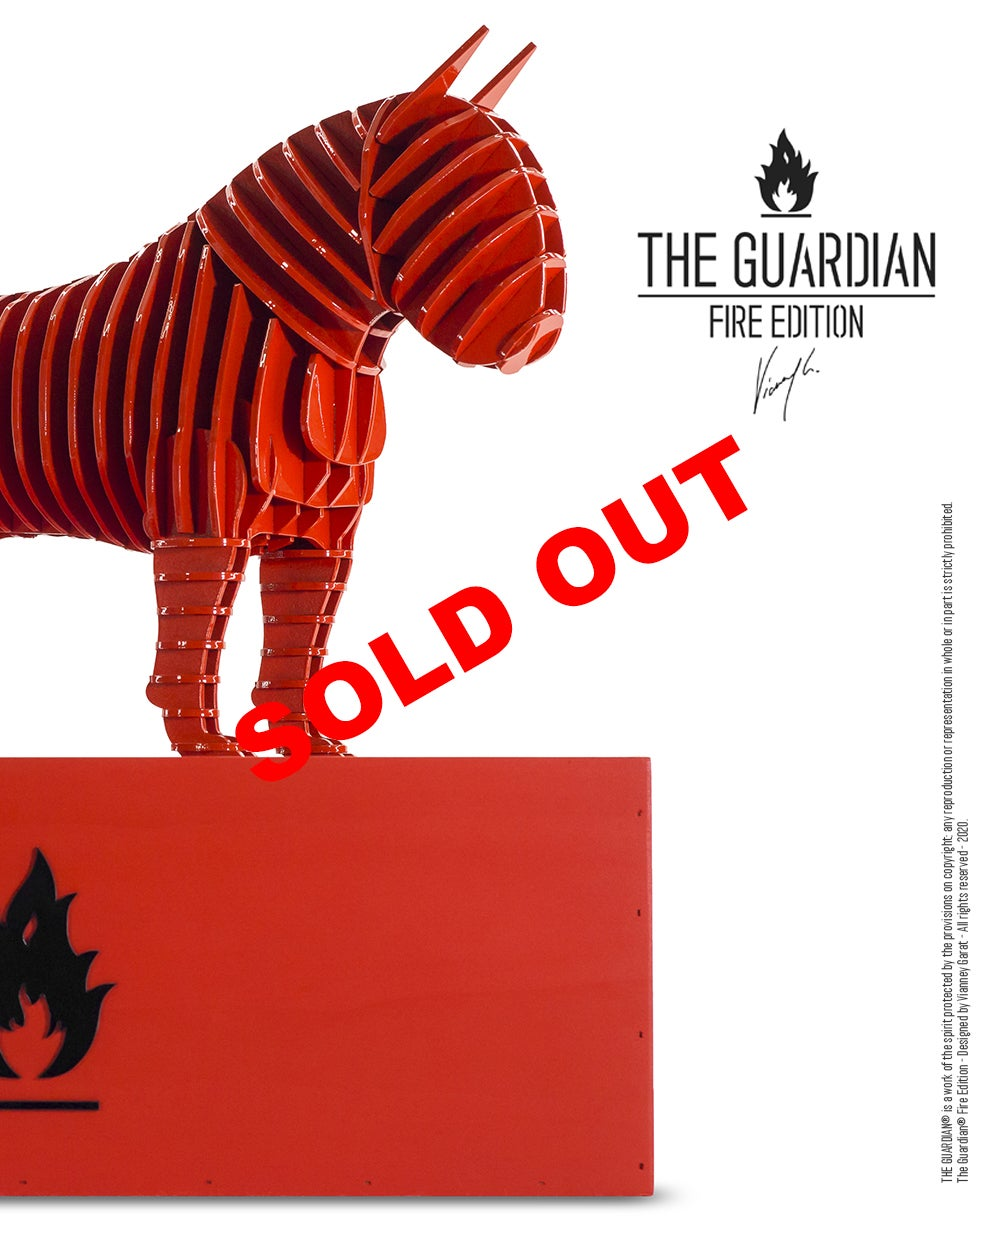 Image of The Guardian® - Fire Edition - Limited Edition - 10 units